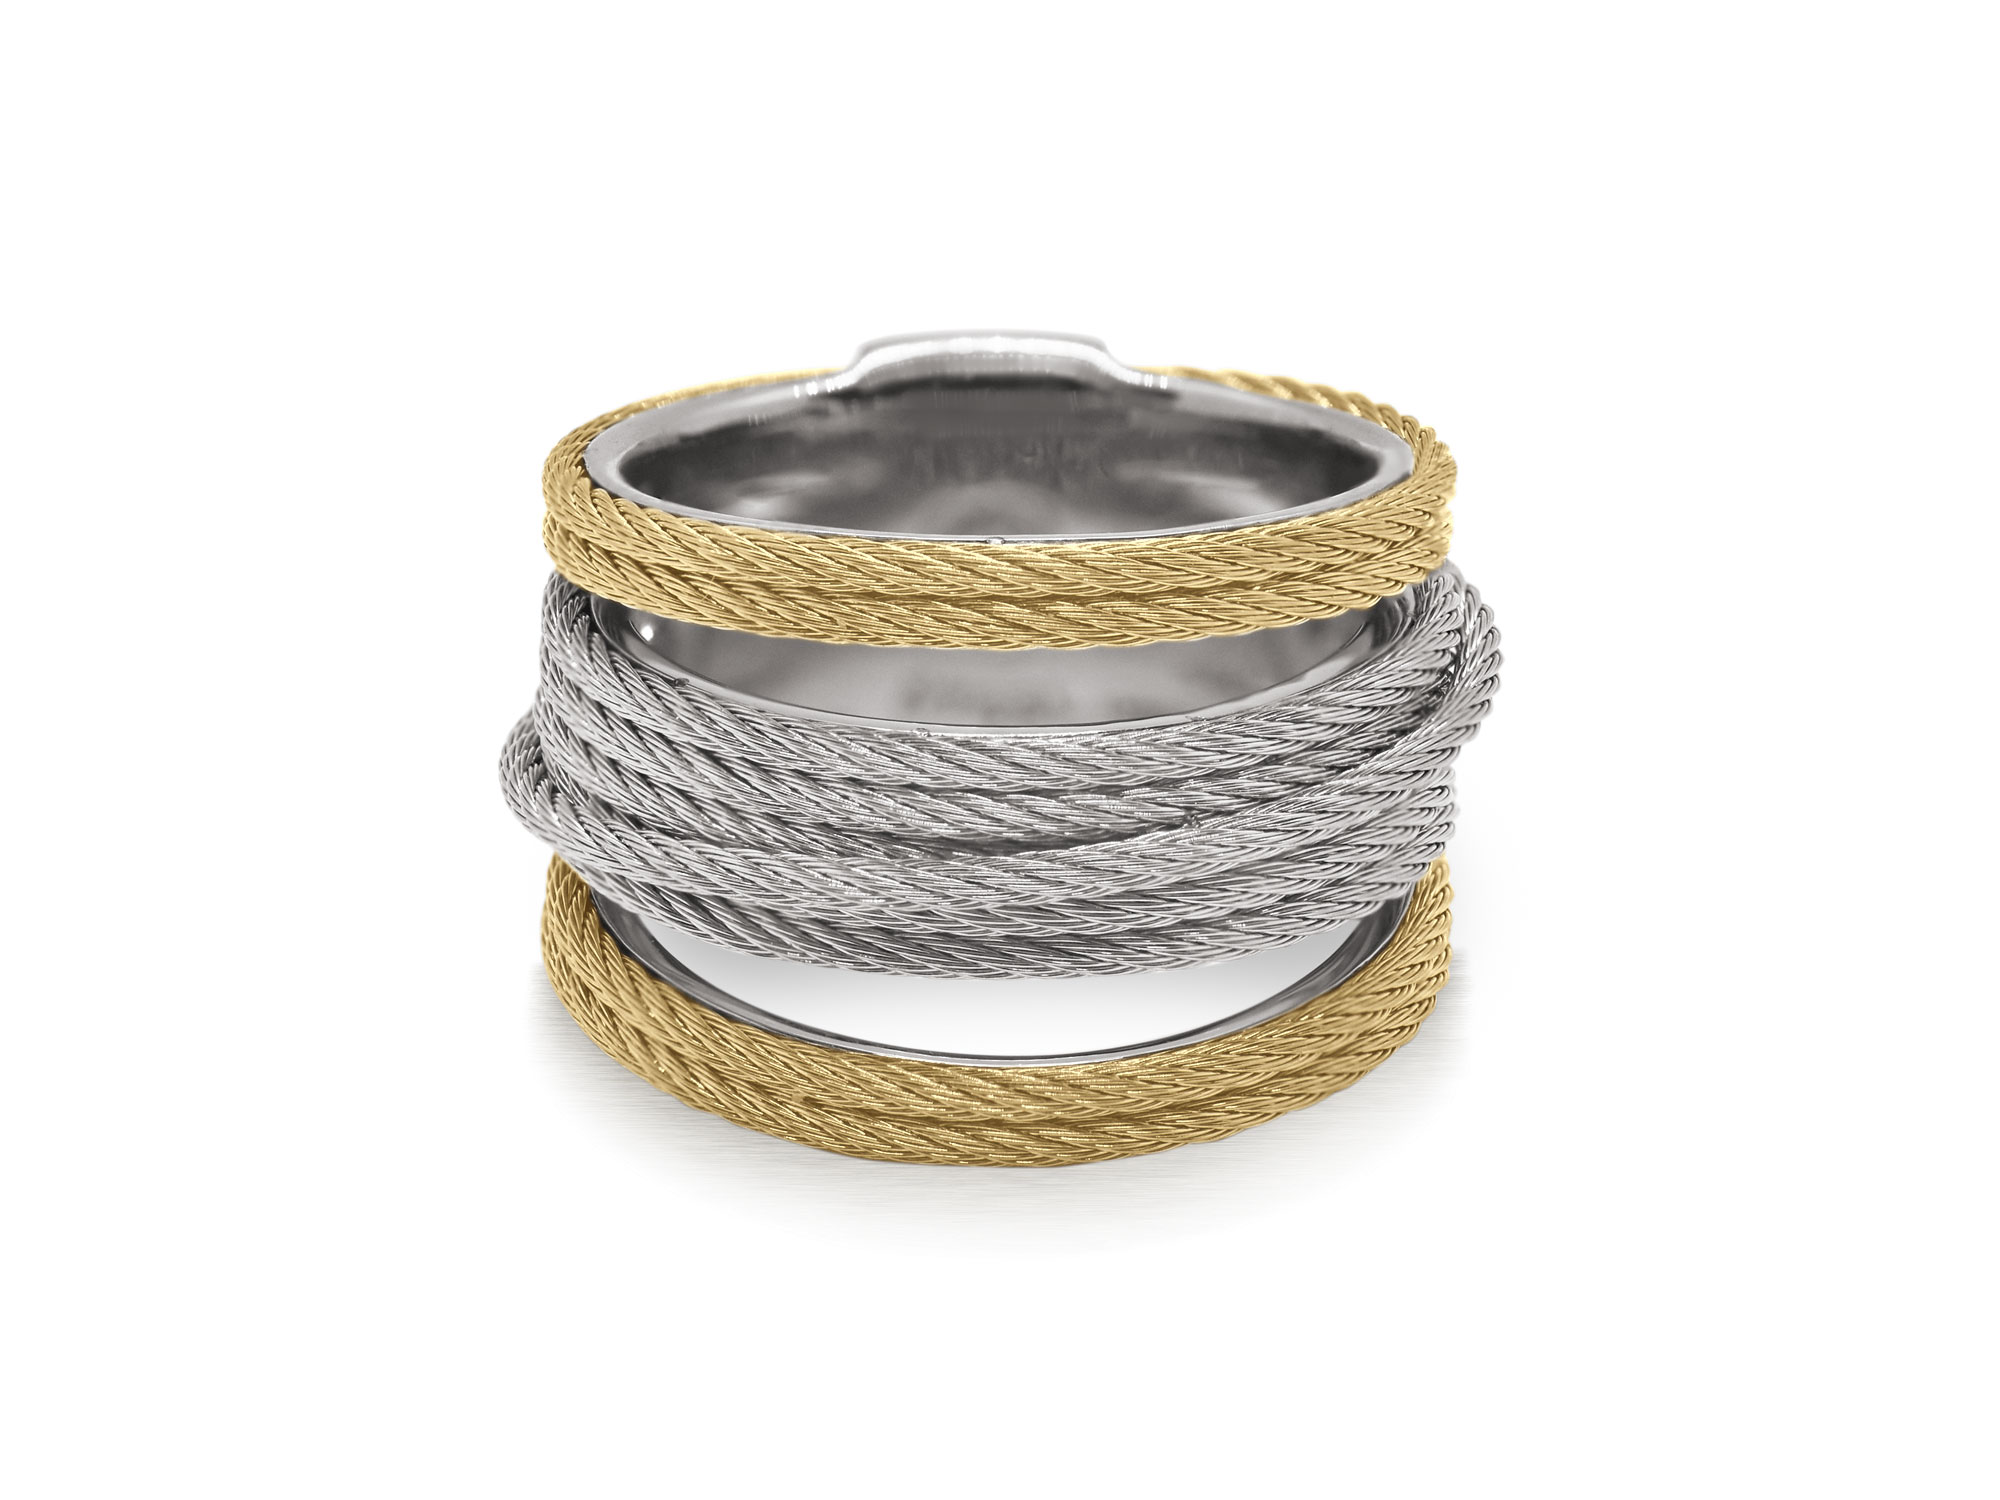 Grey and yellow cable with stainless steel. Imported. SKU: 02-43-S423-00